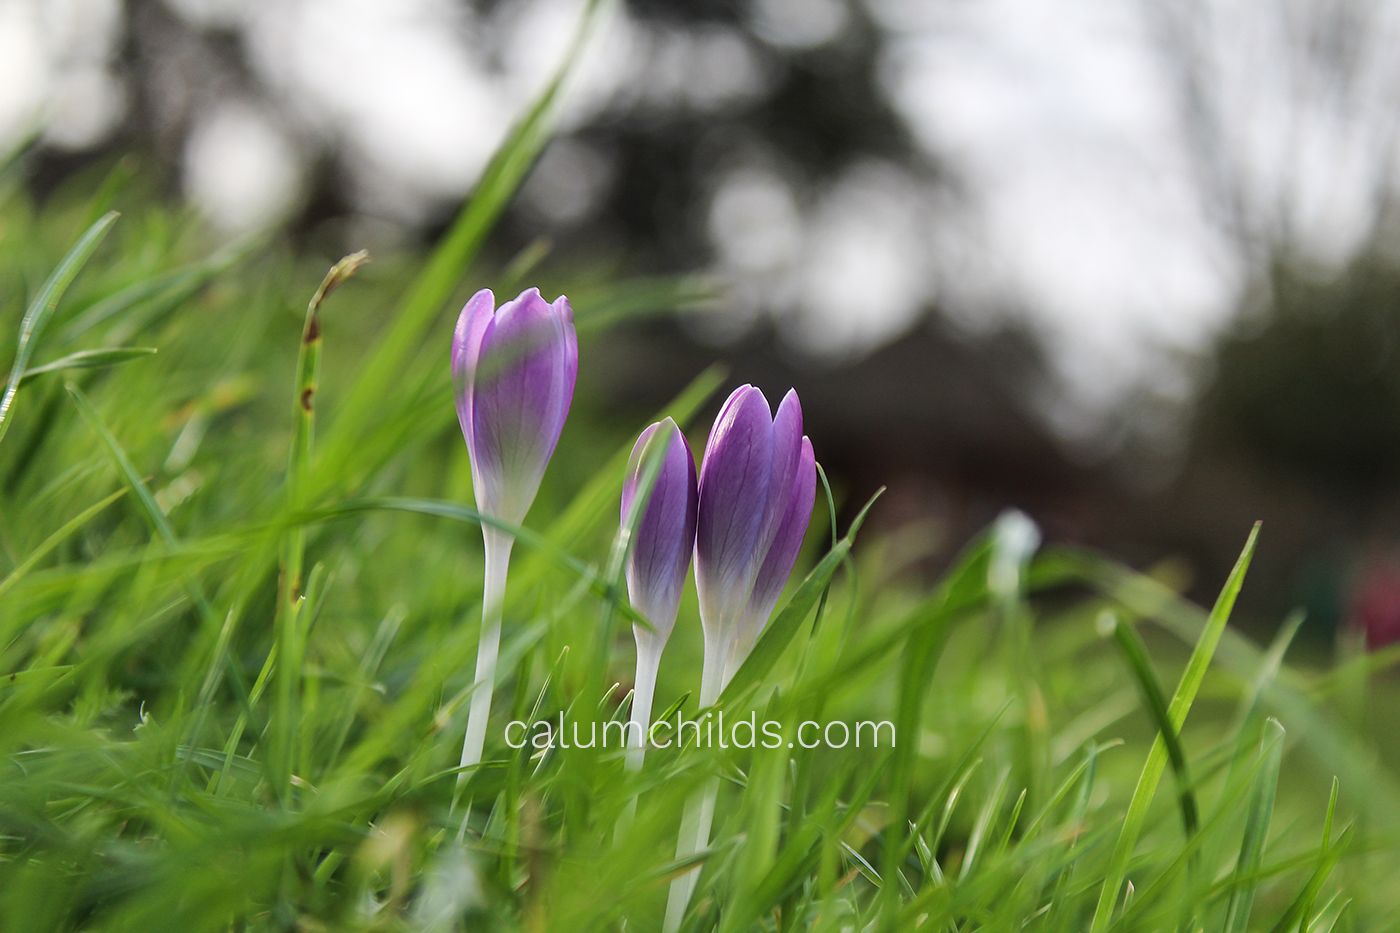 Three crocuses lay among the grass.